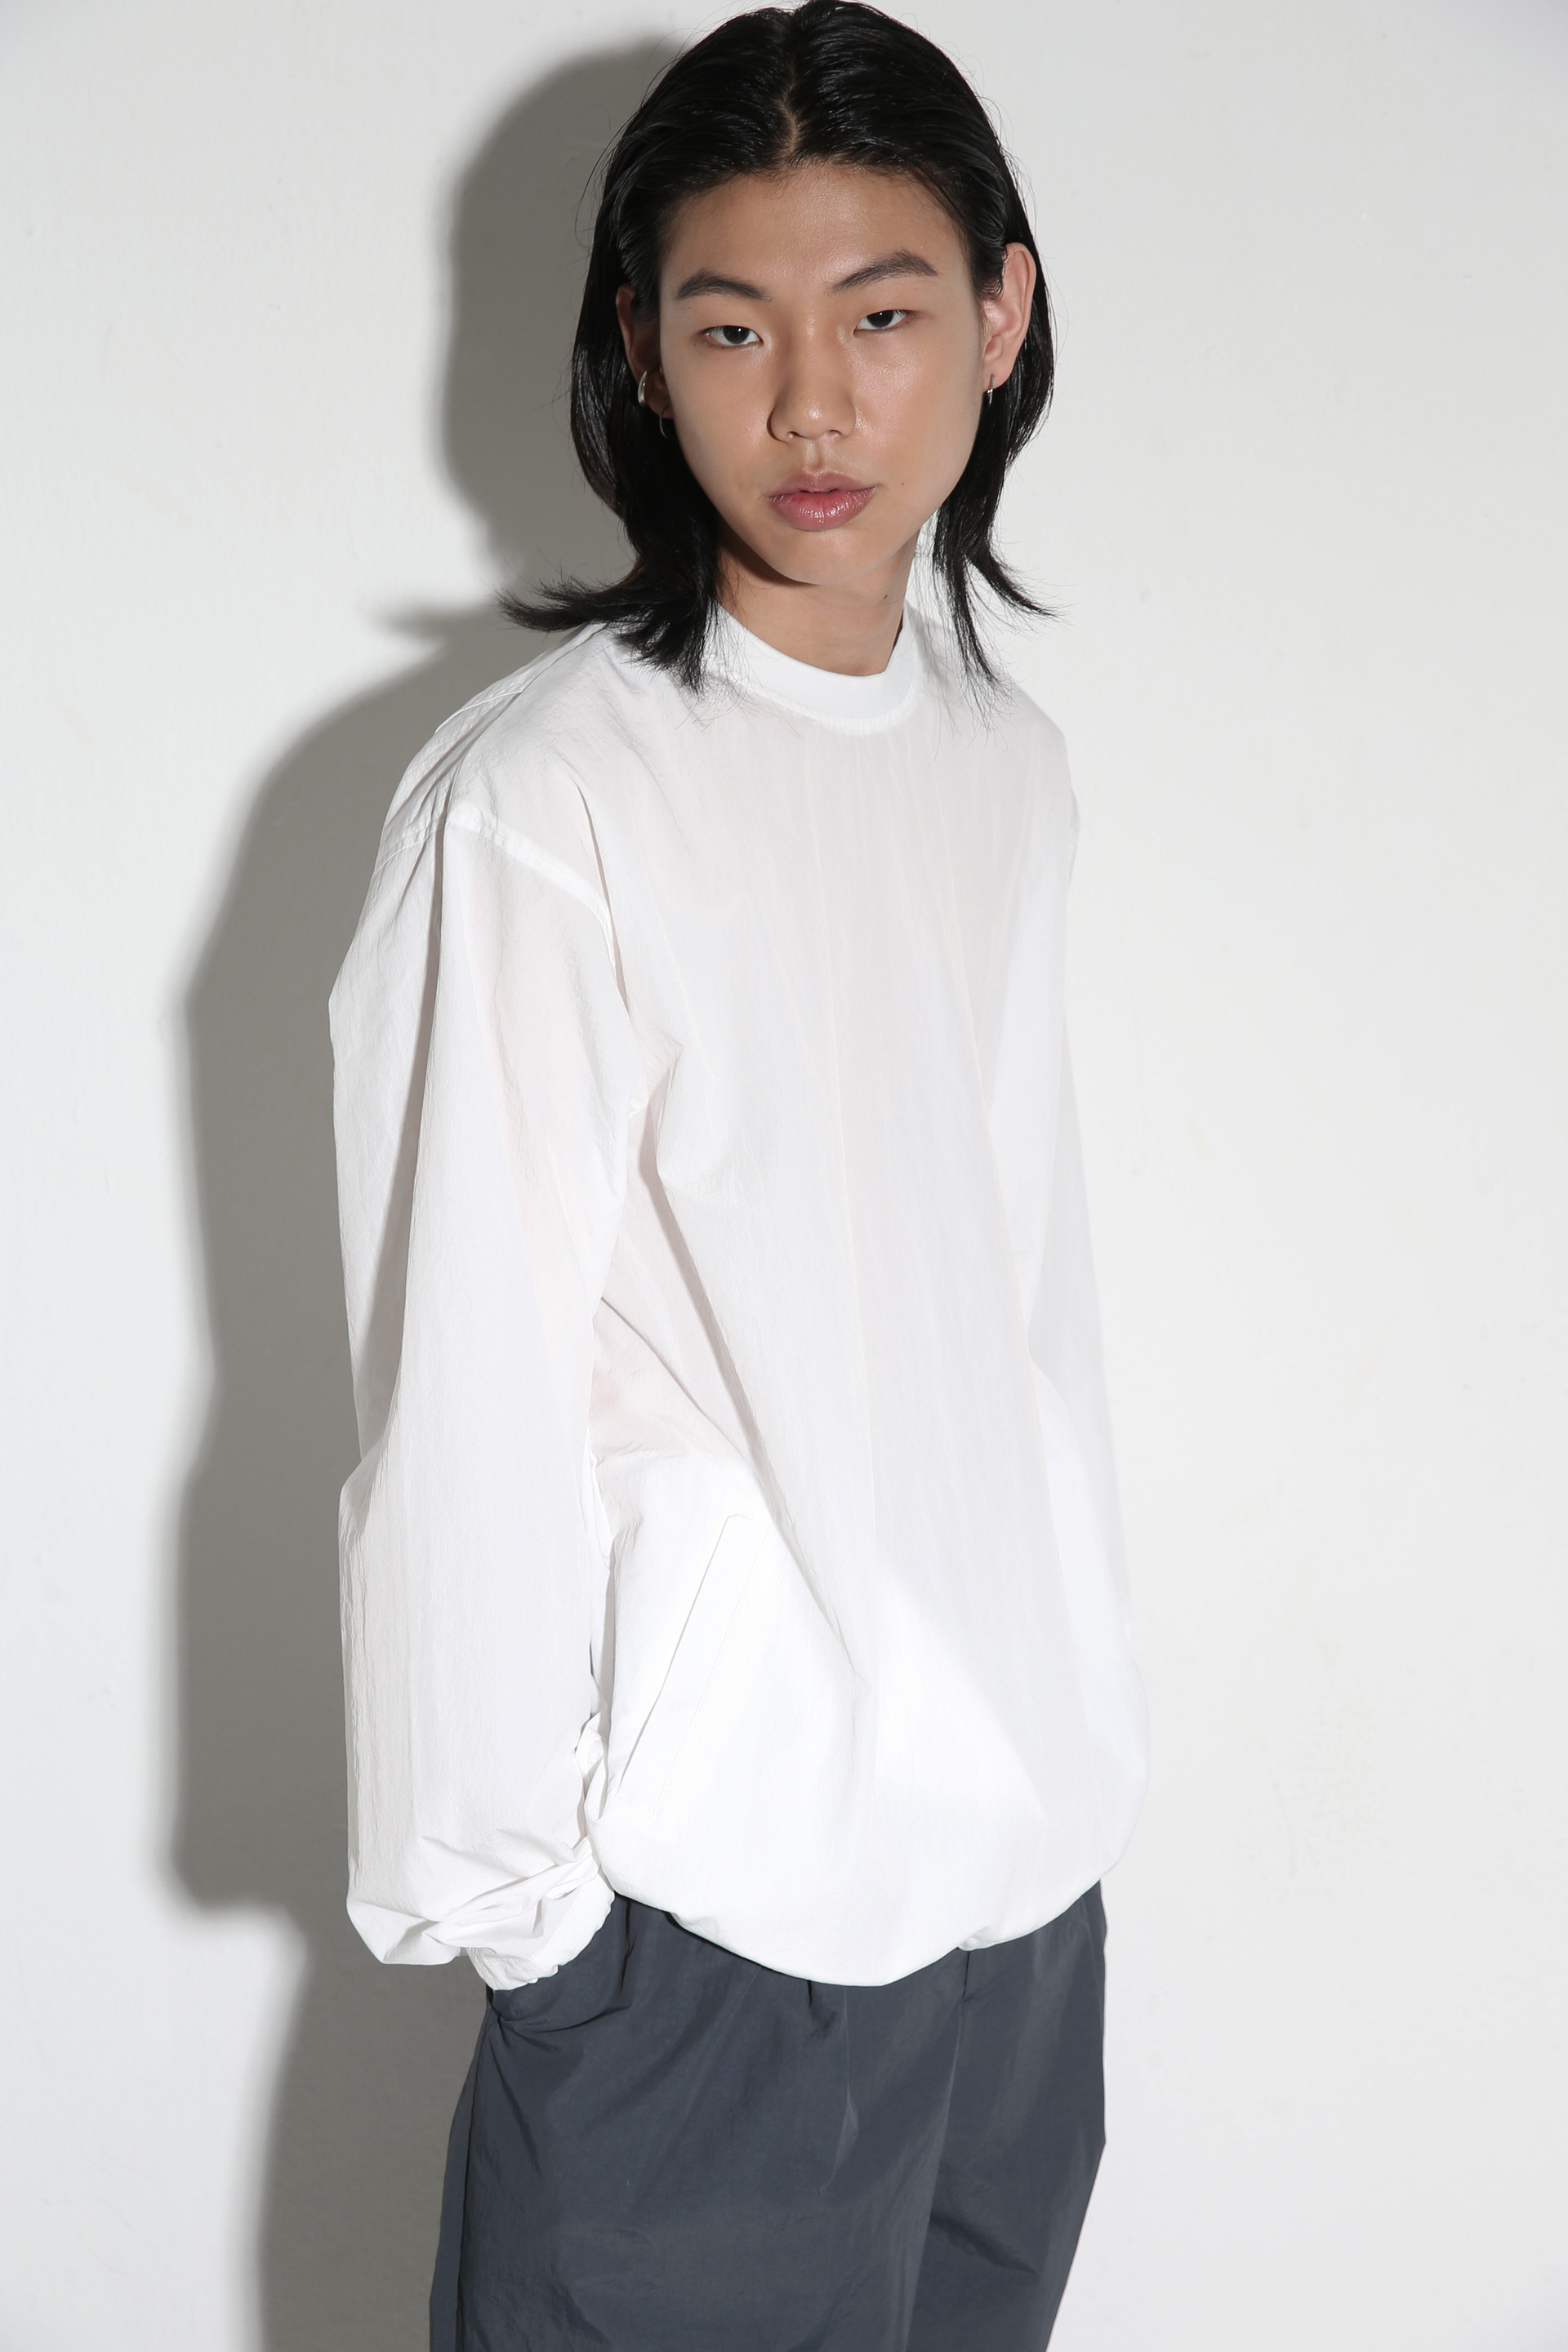 Look 7 - SS21